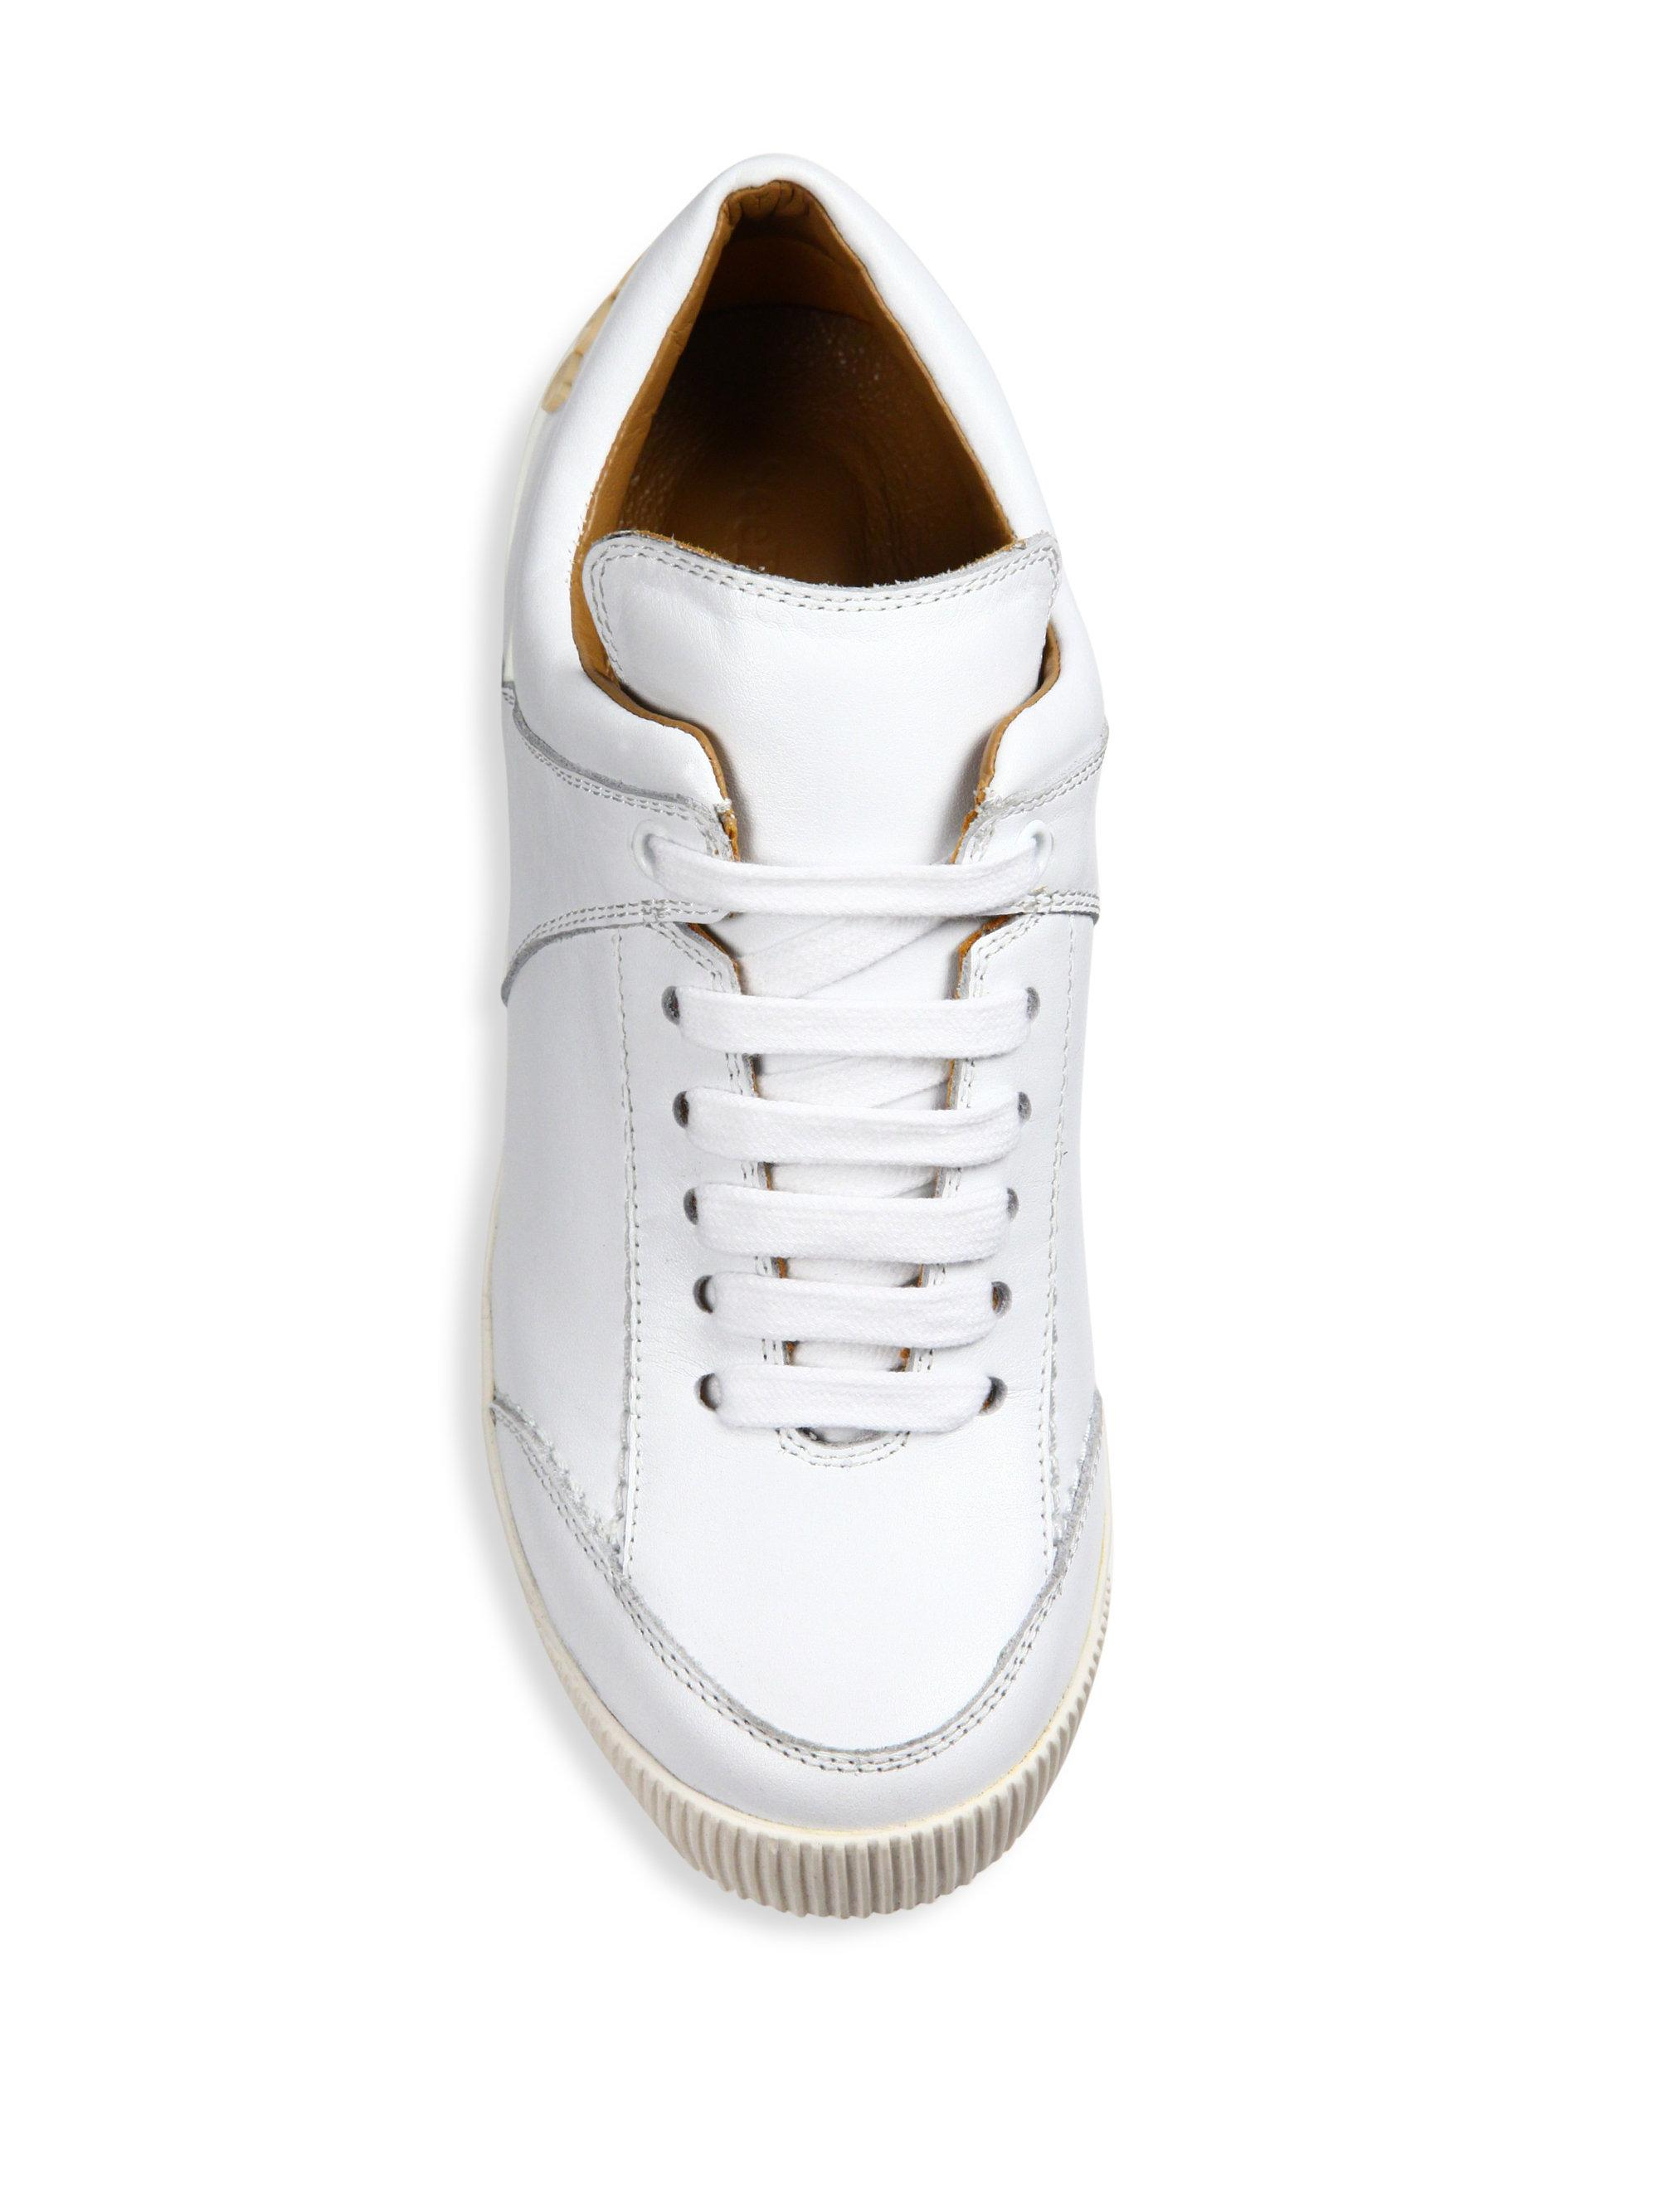 43b9759749 Gallery. Previously sold at  Saks Fifth Avenue · Women s Wedge Sneakers ...